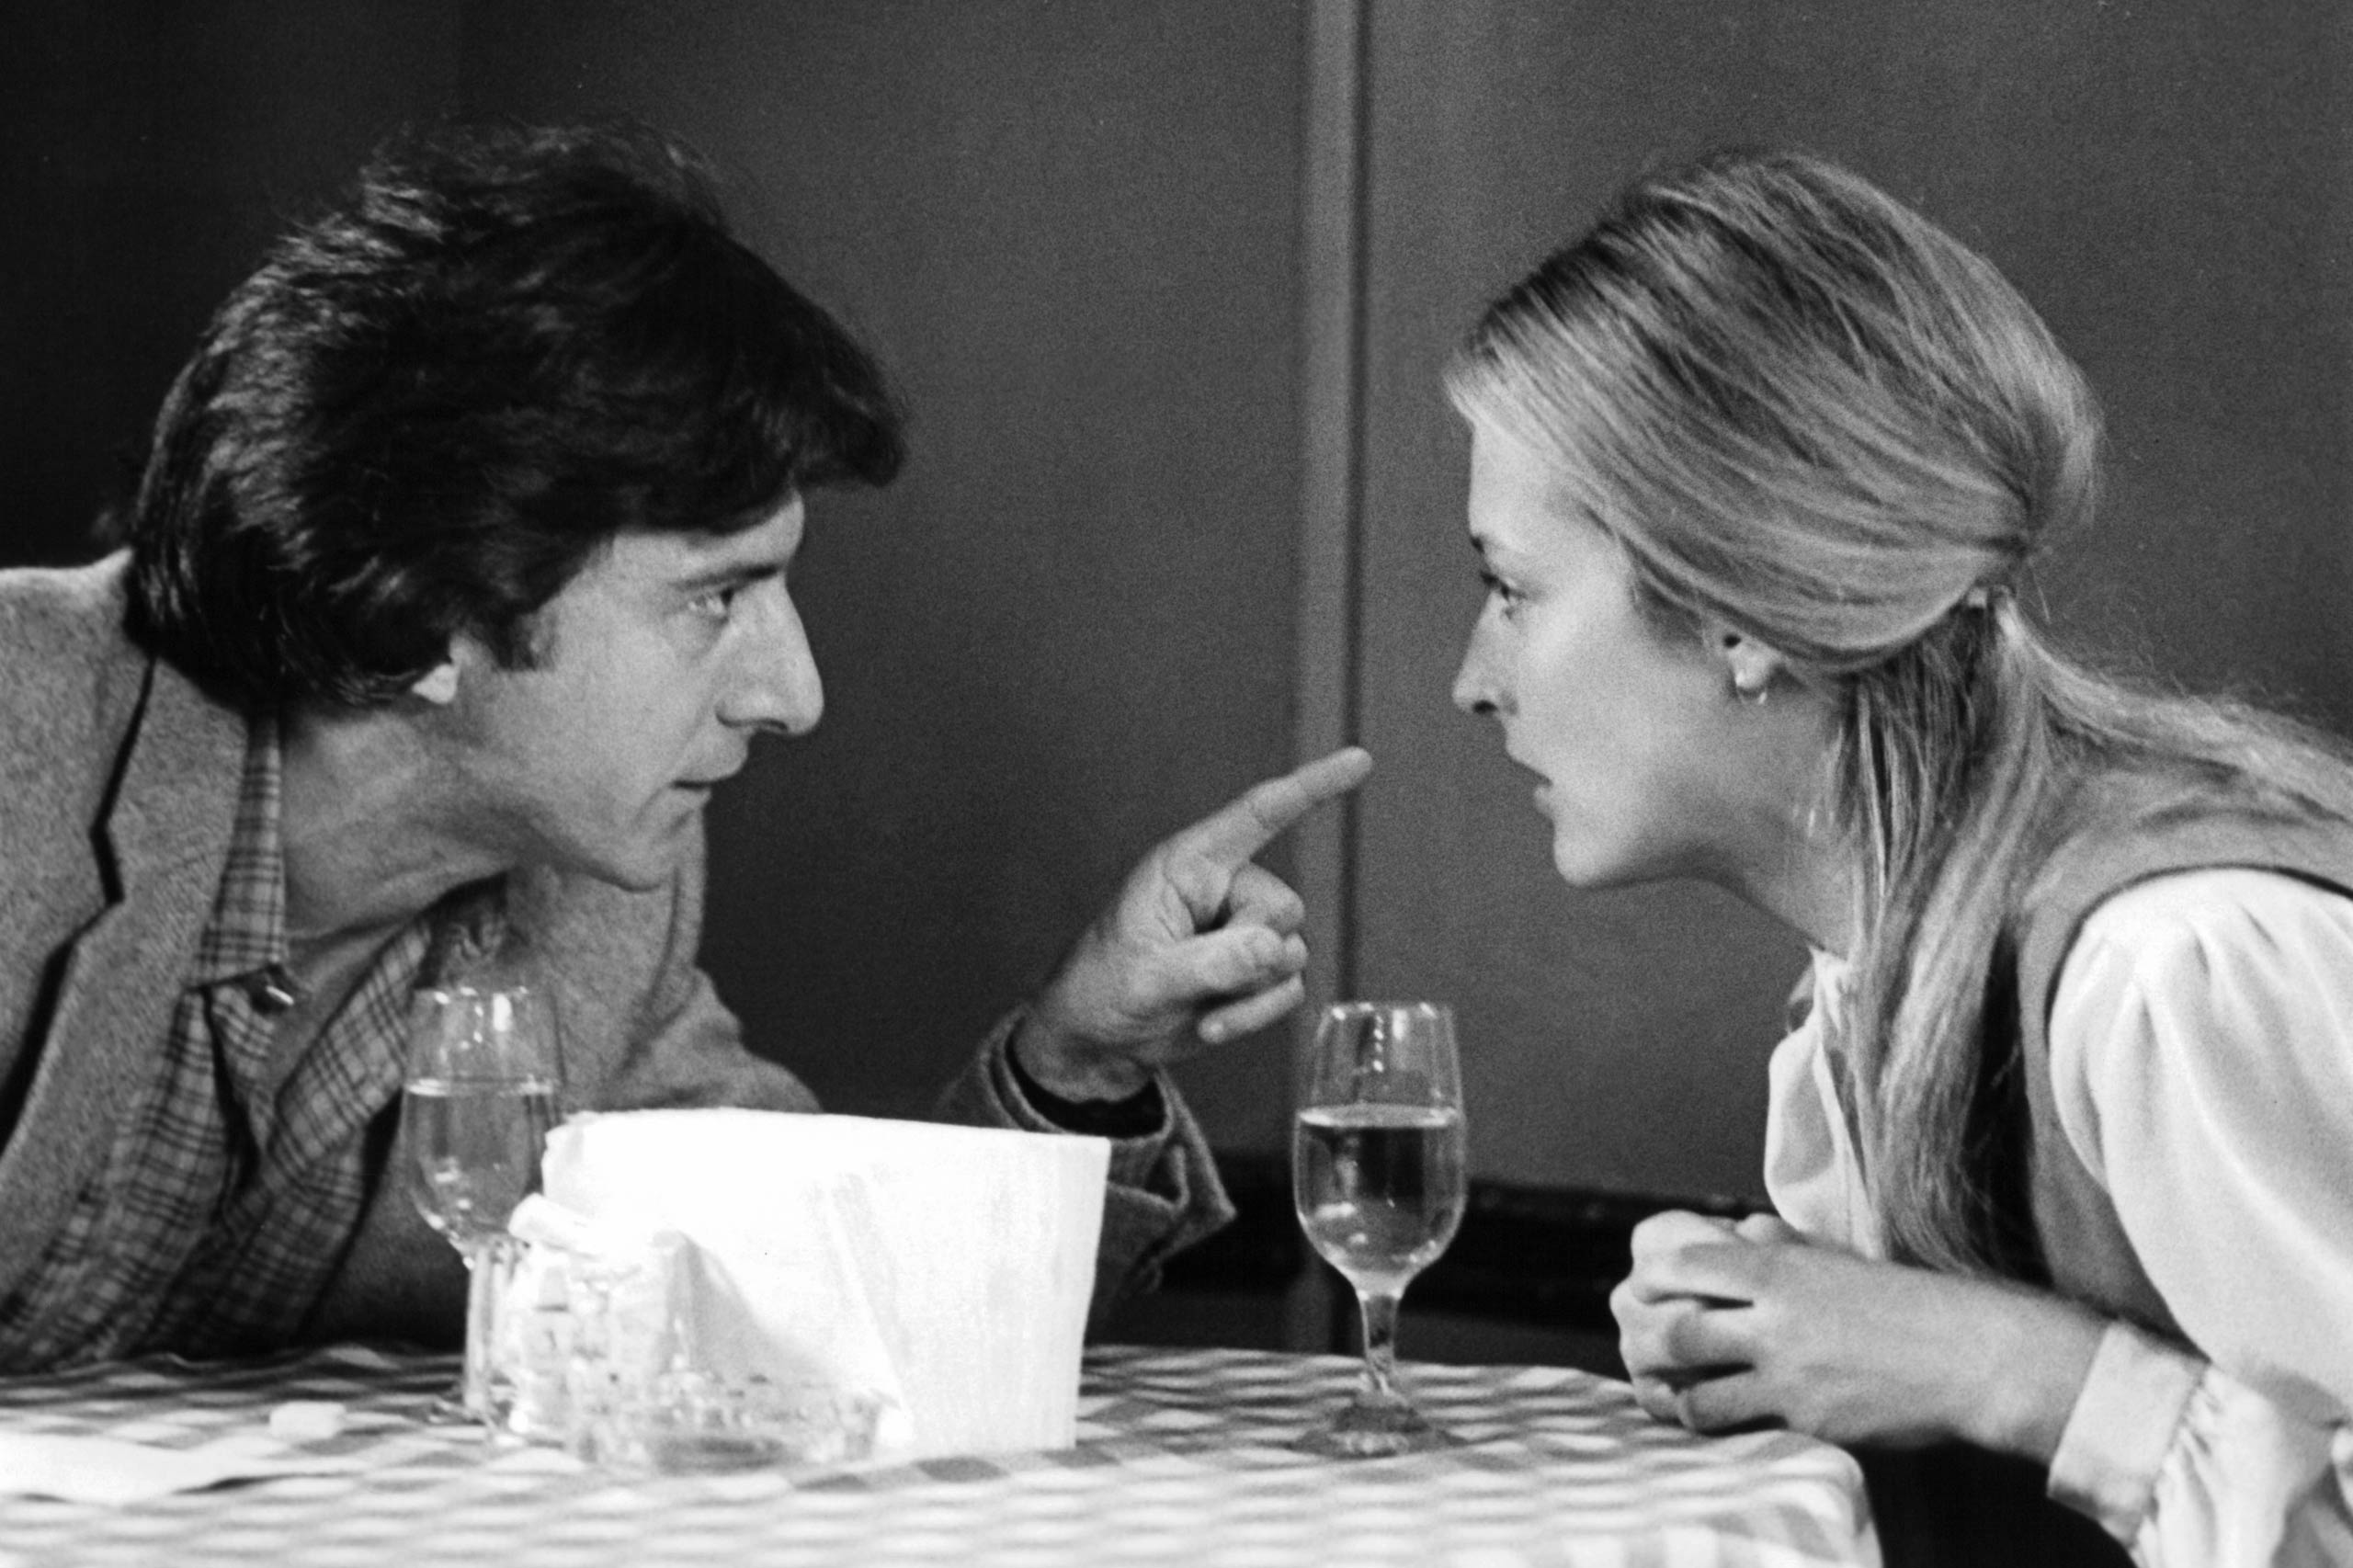 <strong><i>Kramer vs. Kramer</i>, 1979</strong> This domestic drama, starring Dustin Hoffman and Meryl Streep as a couple whose marriage ends, was upfront about the challenges of raising children and the degree to which married life could be fundamentally unsatisfying.